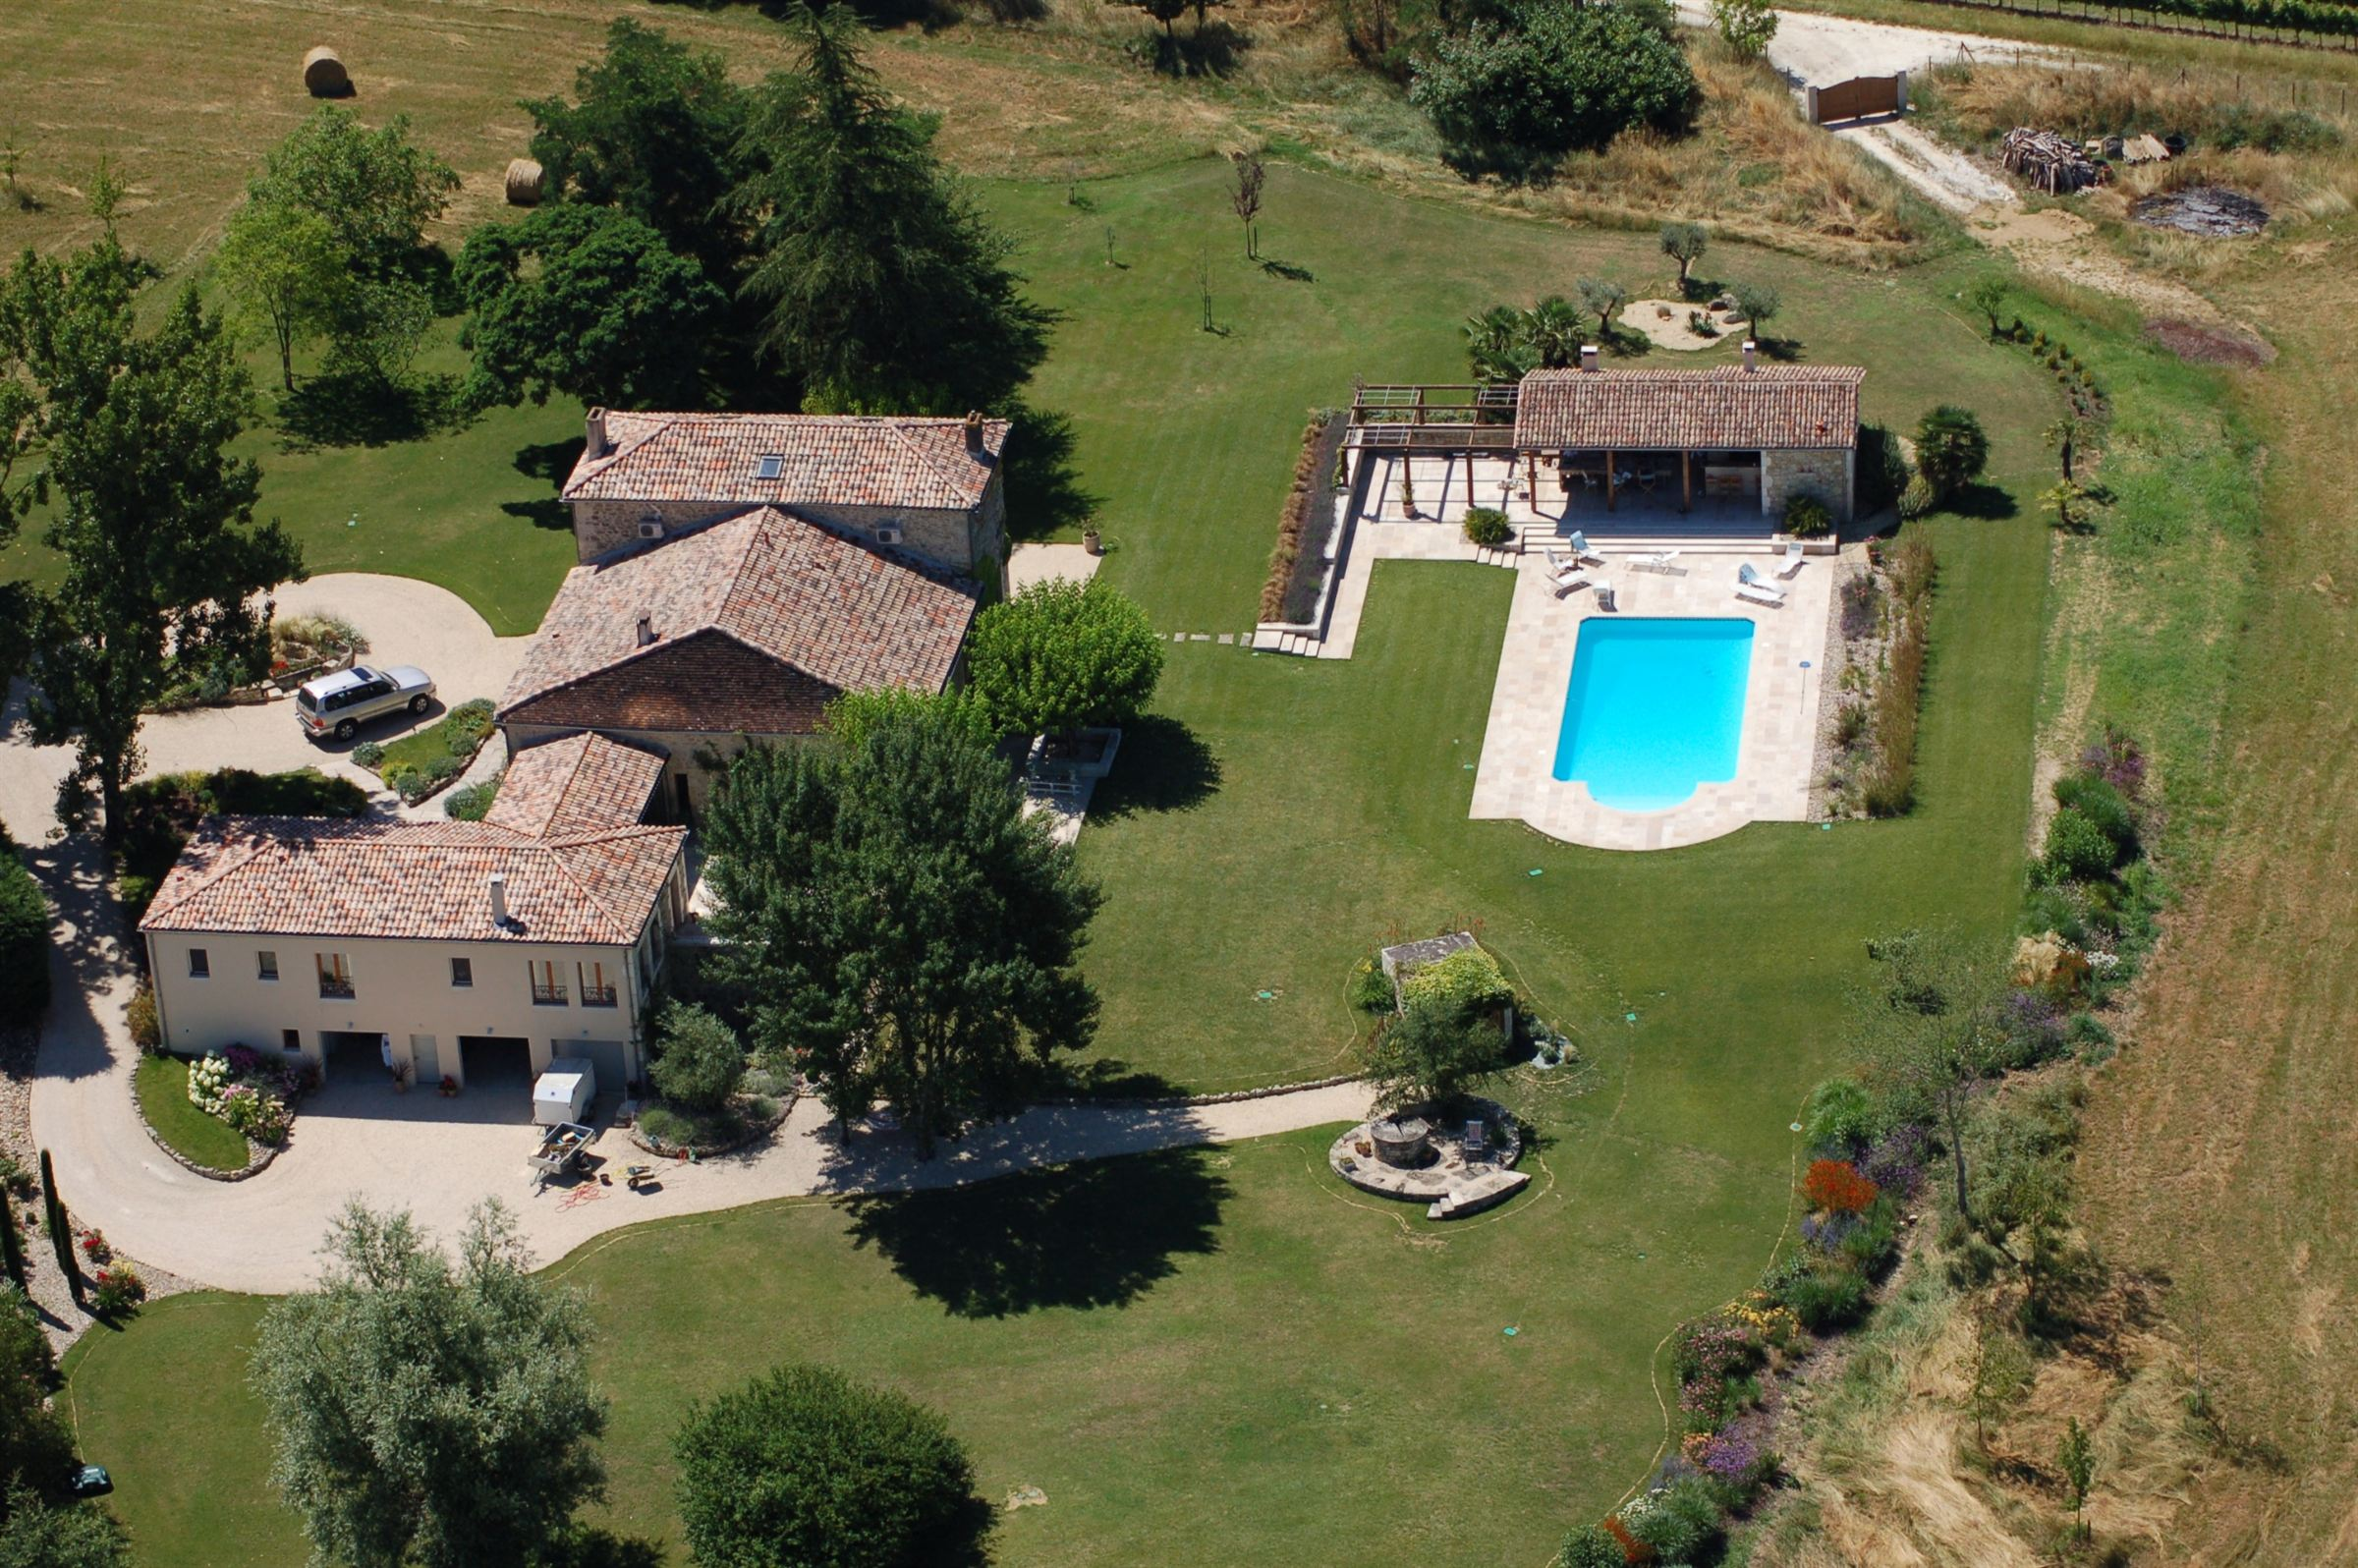 獨棟家庭住宅 為 出售 在 50 MN BORDEAUX - IDEAL HOLIDAY HOME - BUCOLIC SETTING Bordeaux, 阿基坦, 33000 法國